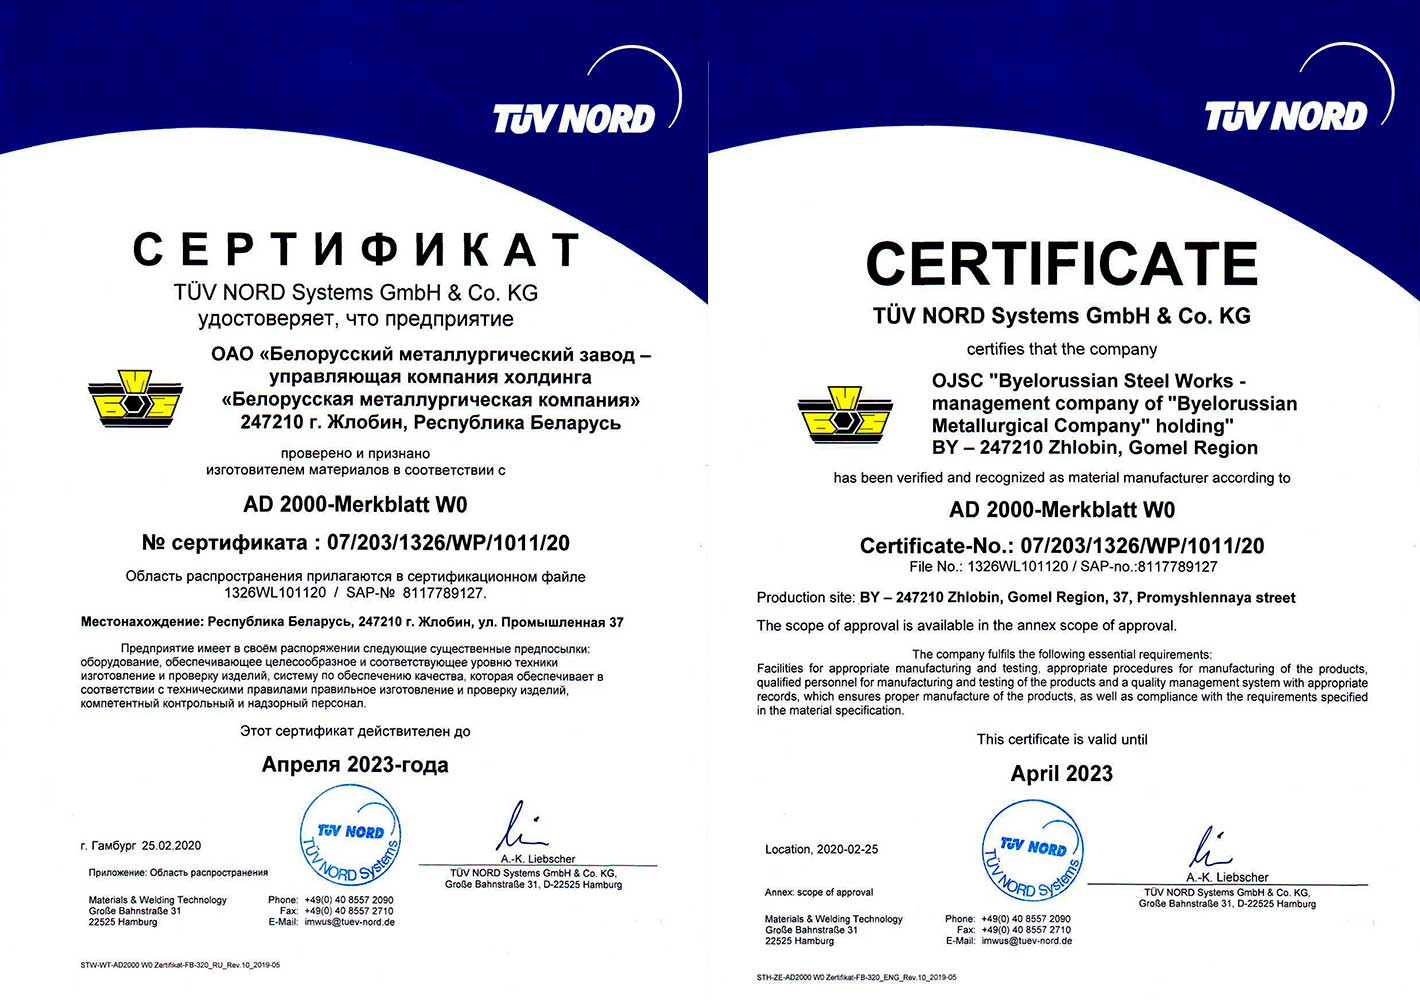 Certificate of TUV NORD Systems (Germany) № 07-203-1326-WP-1011/14 for production of hot-rolled steel bars and seamless tubes from ferrite steels according to the requirements of AD 2000-Merkblatt W0.